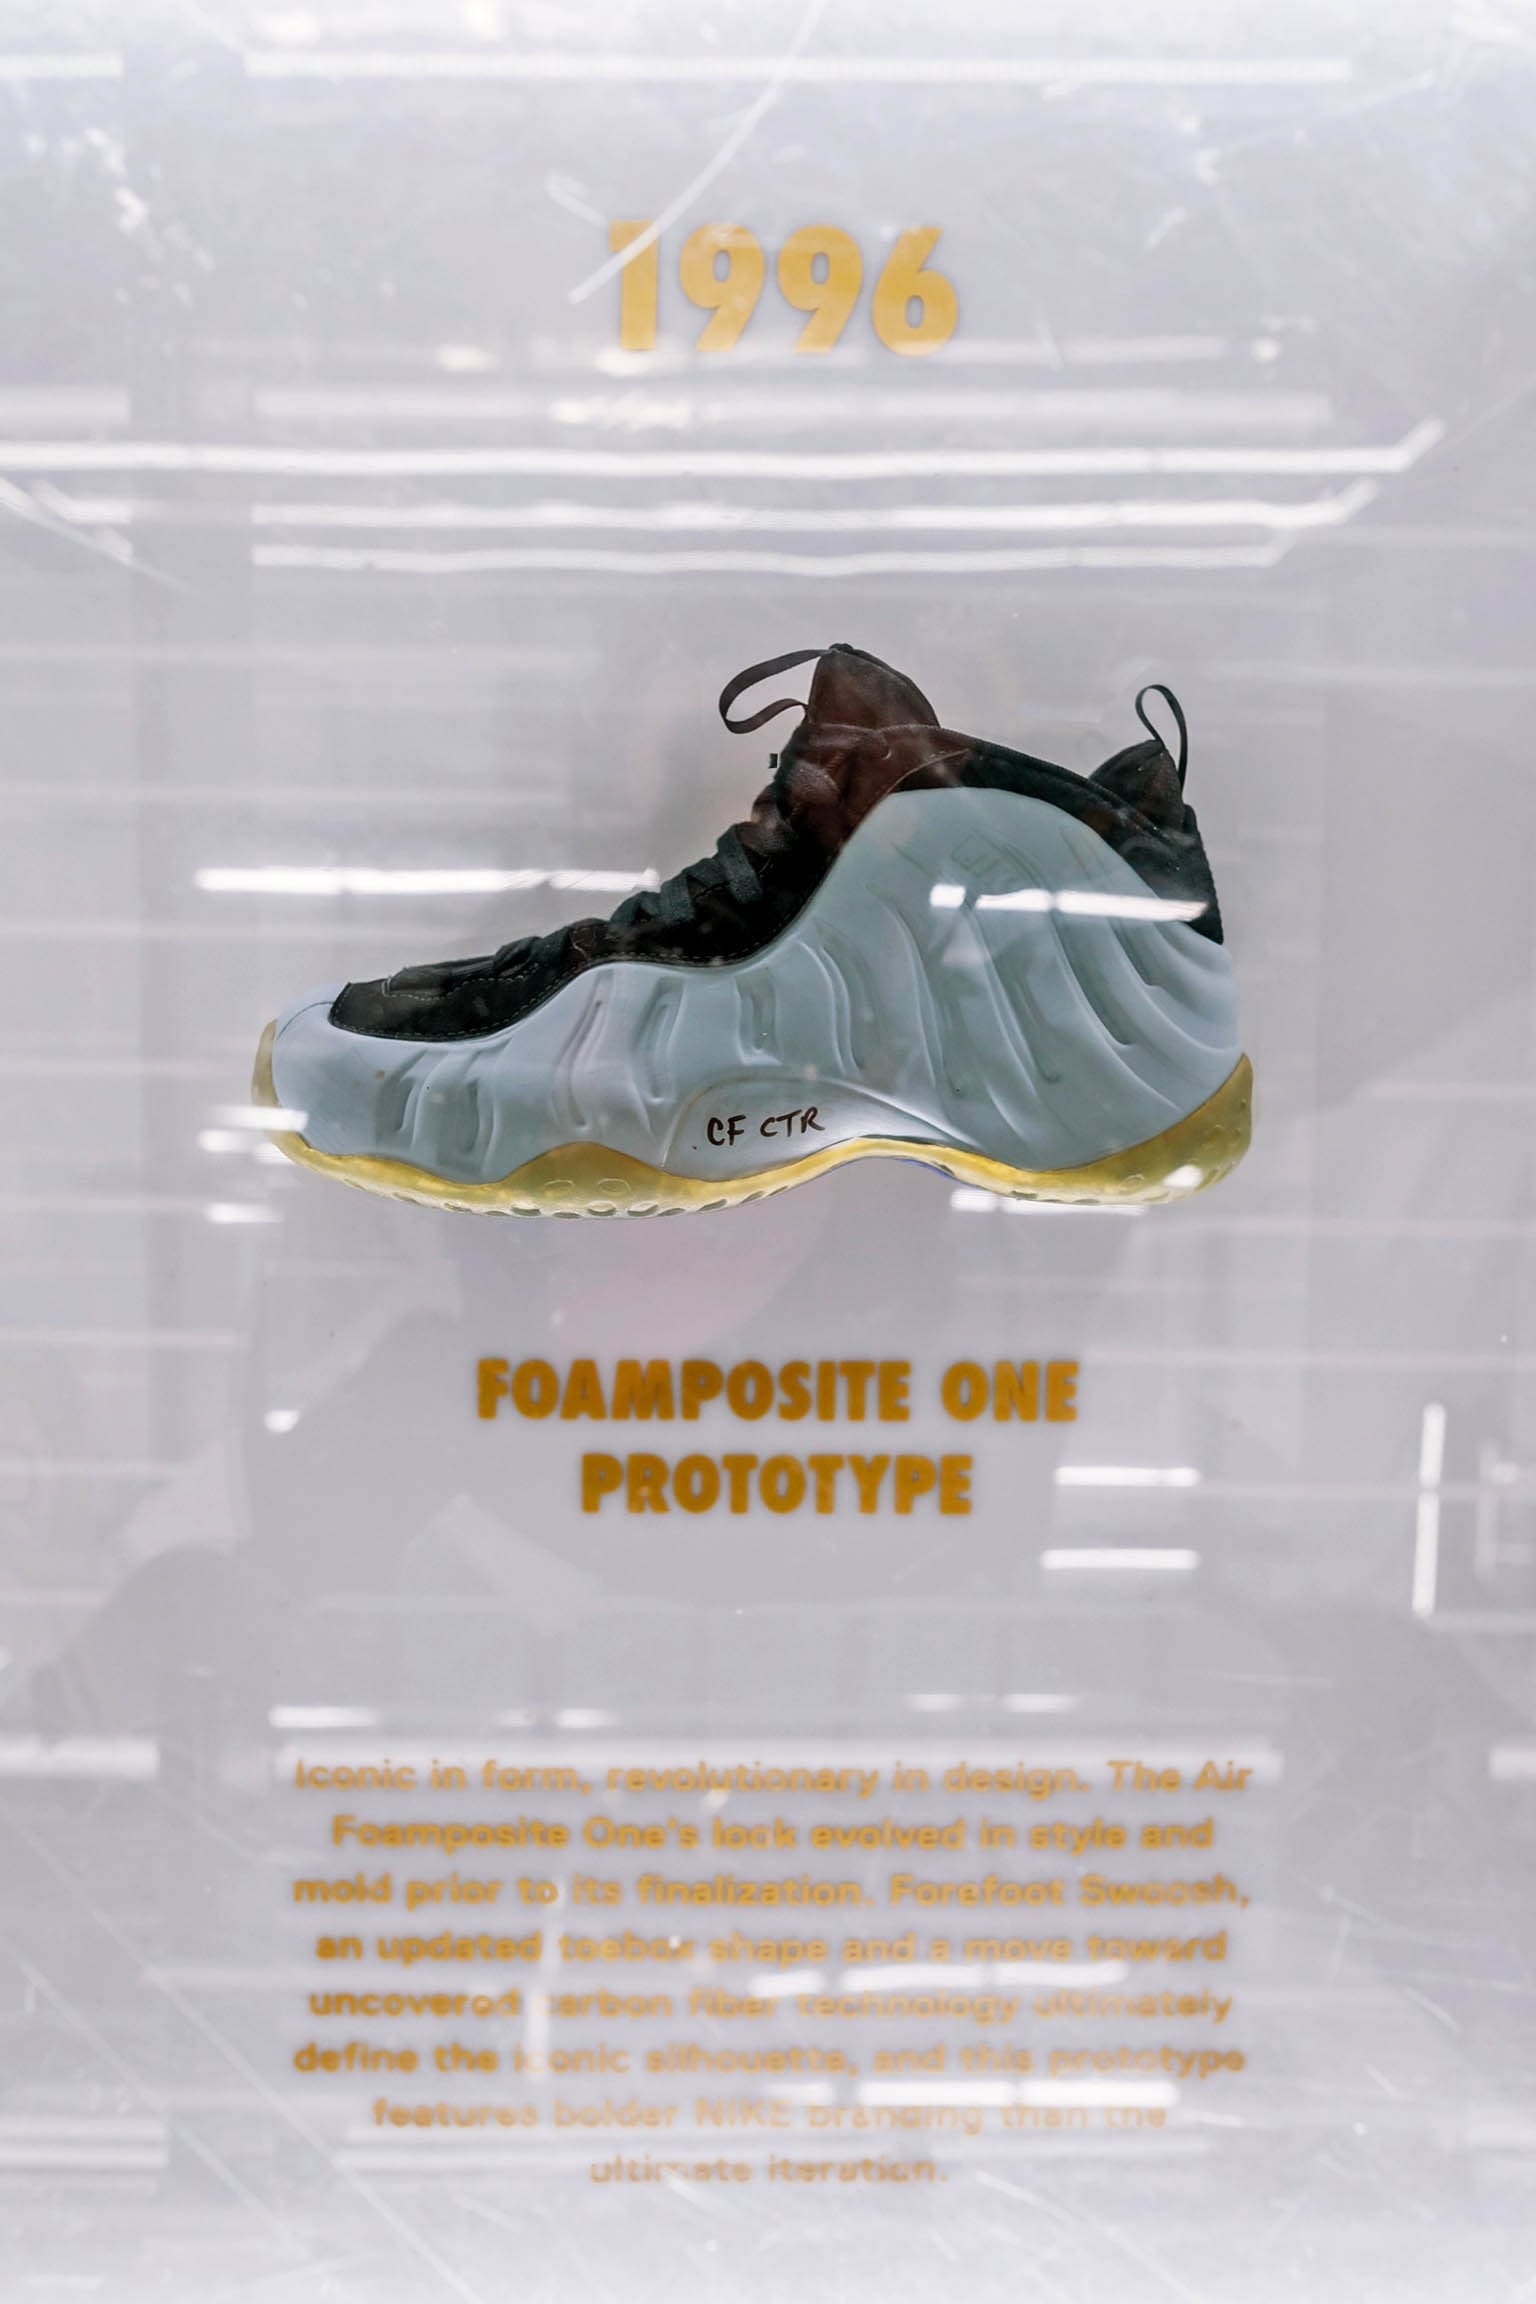 Golden Air: A Celebration of Foamposite